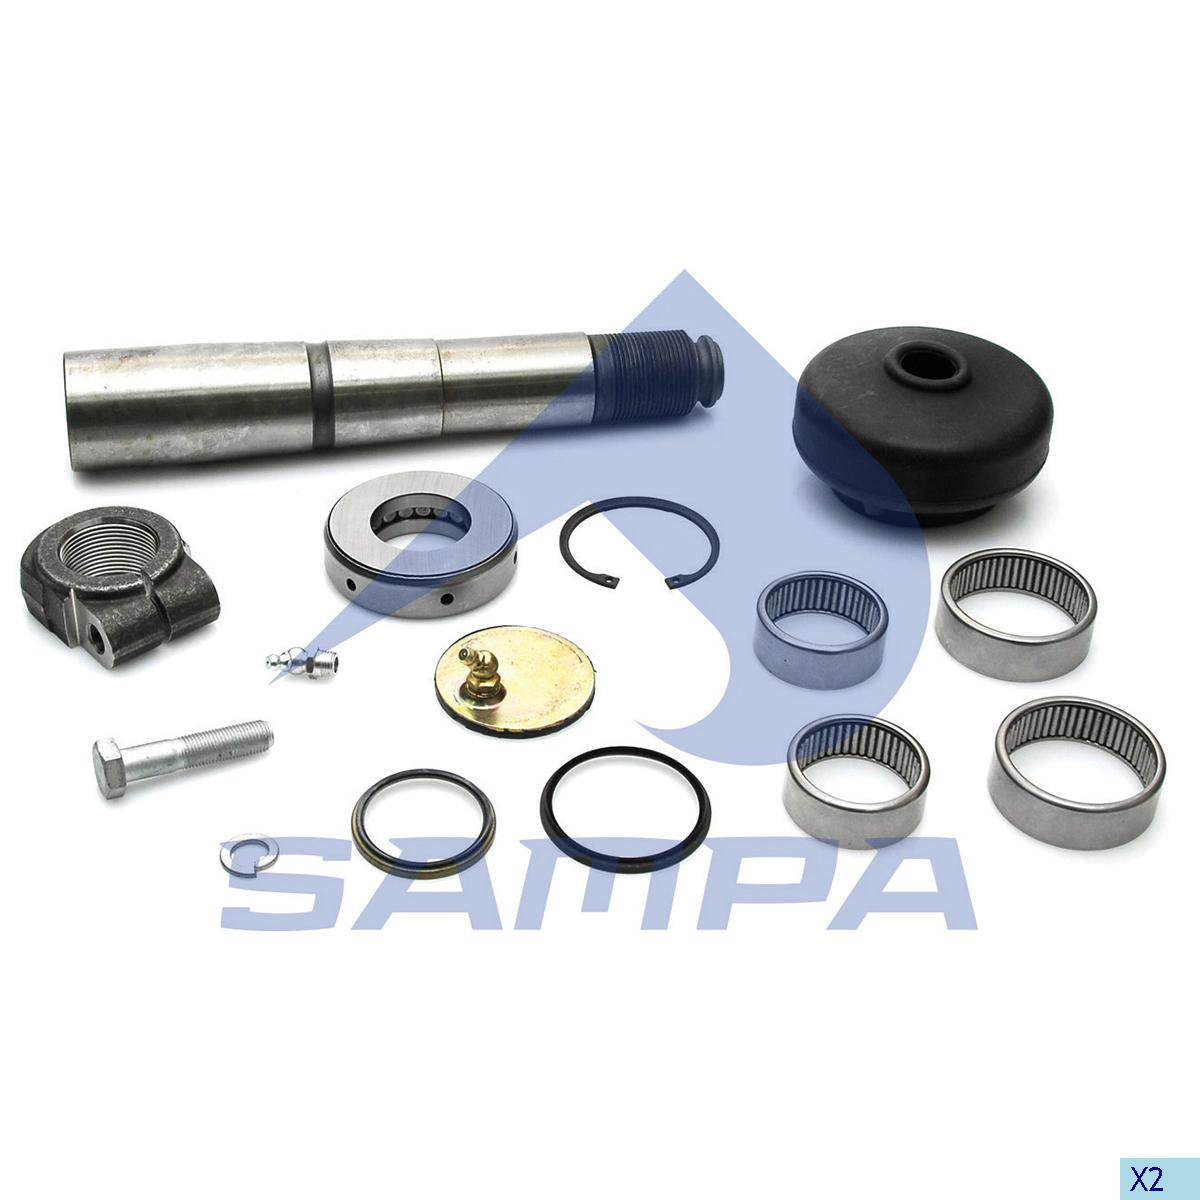 King Pin Kit, Axle Steering Knuckle, Iveco, Power Unit